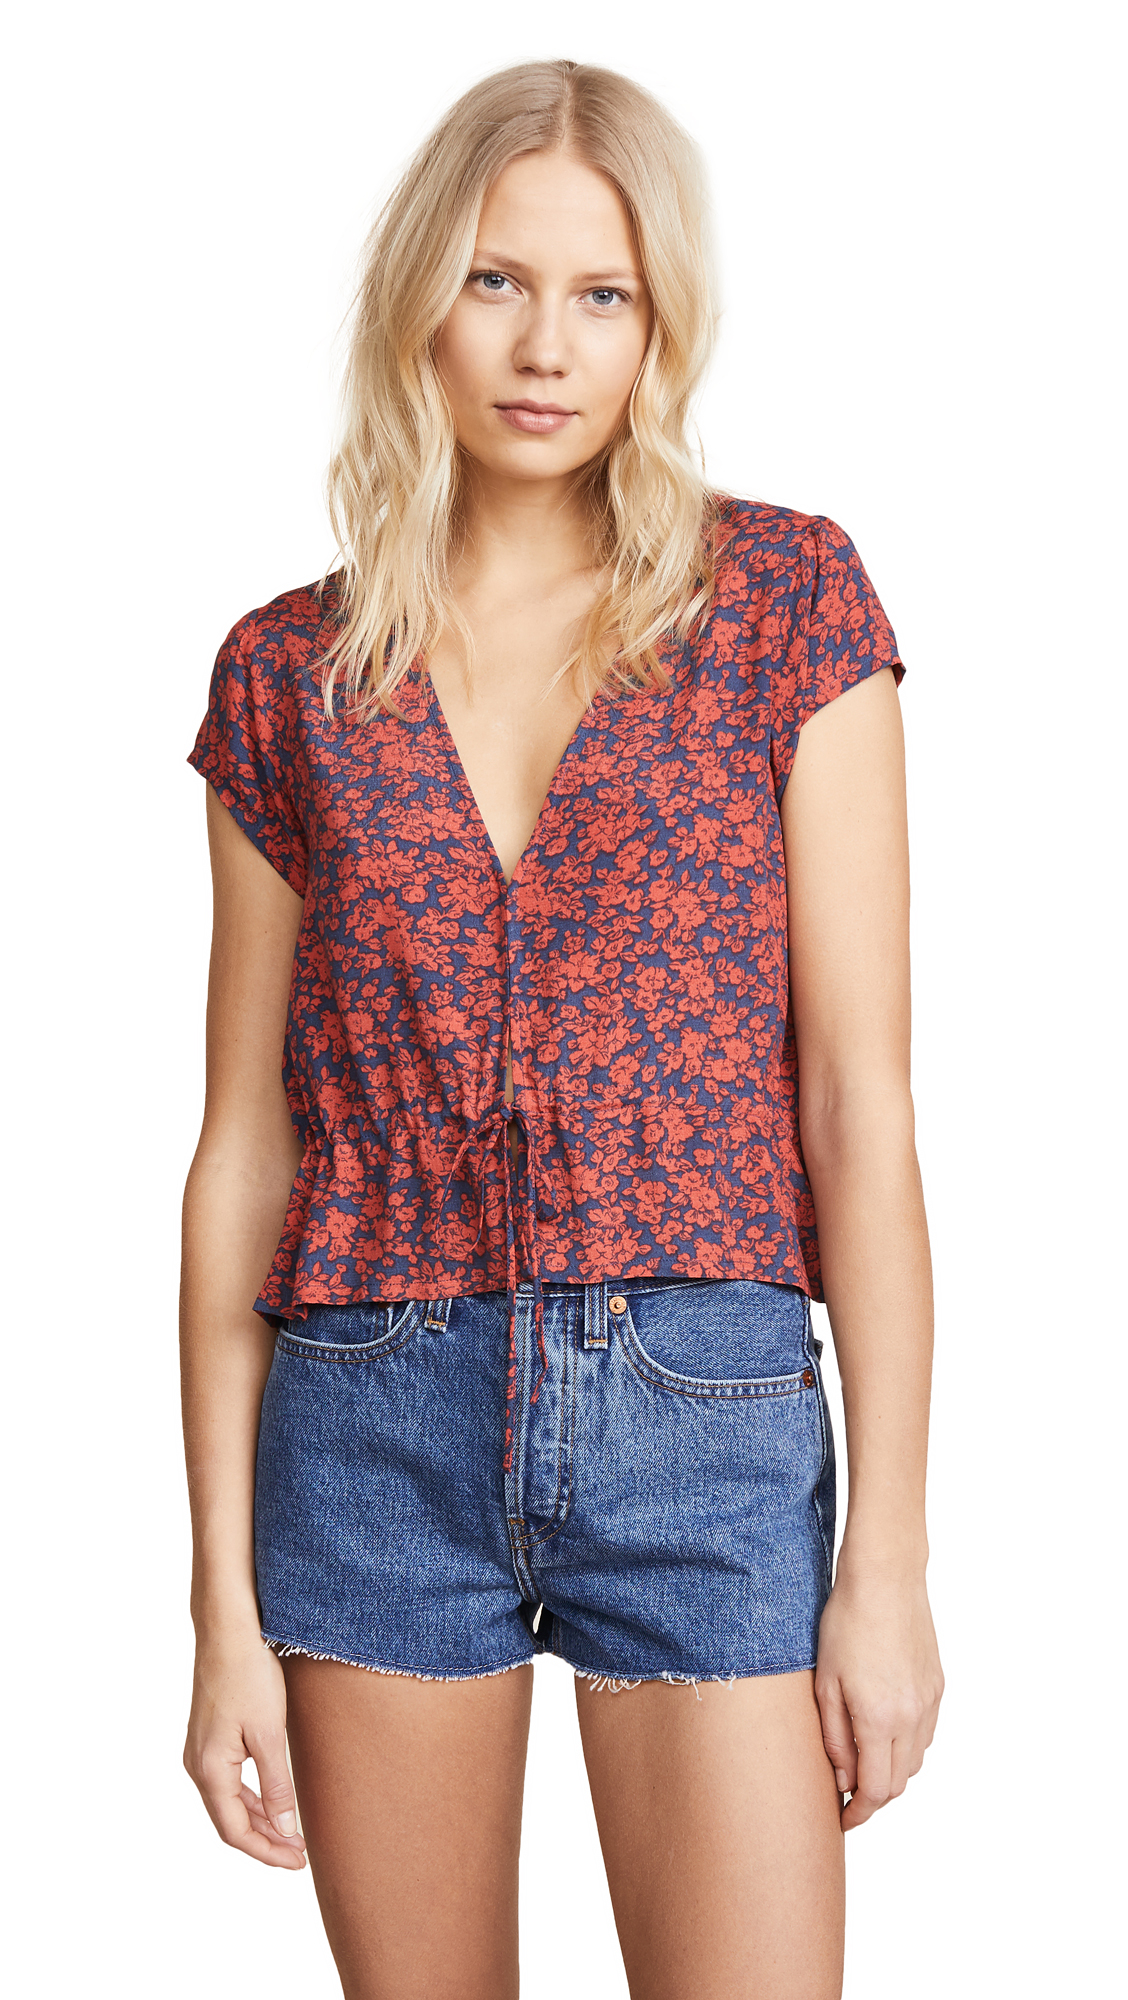 Rolla's Lula Blouse In Navy Blossom